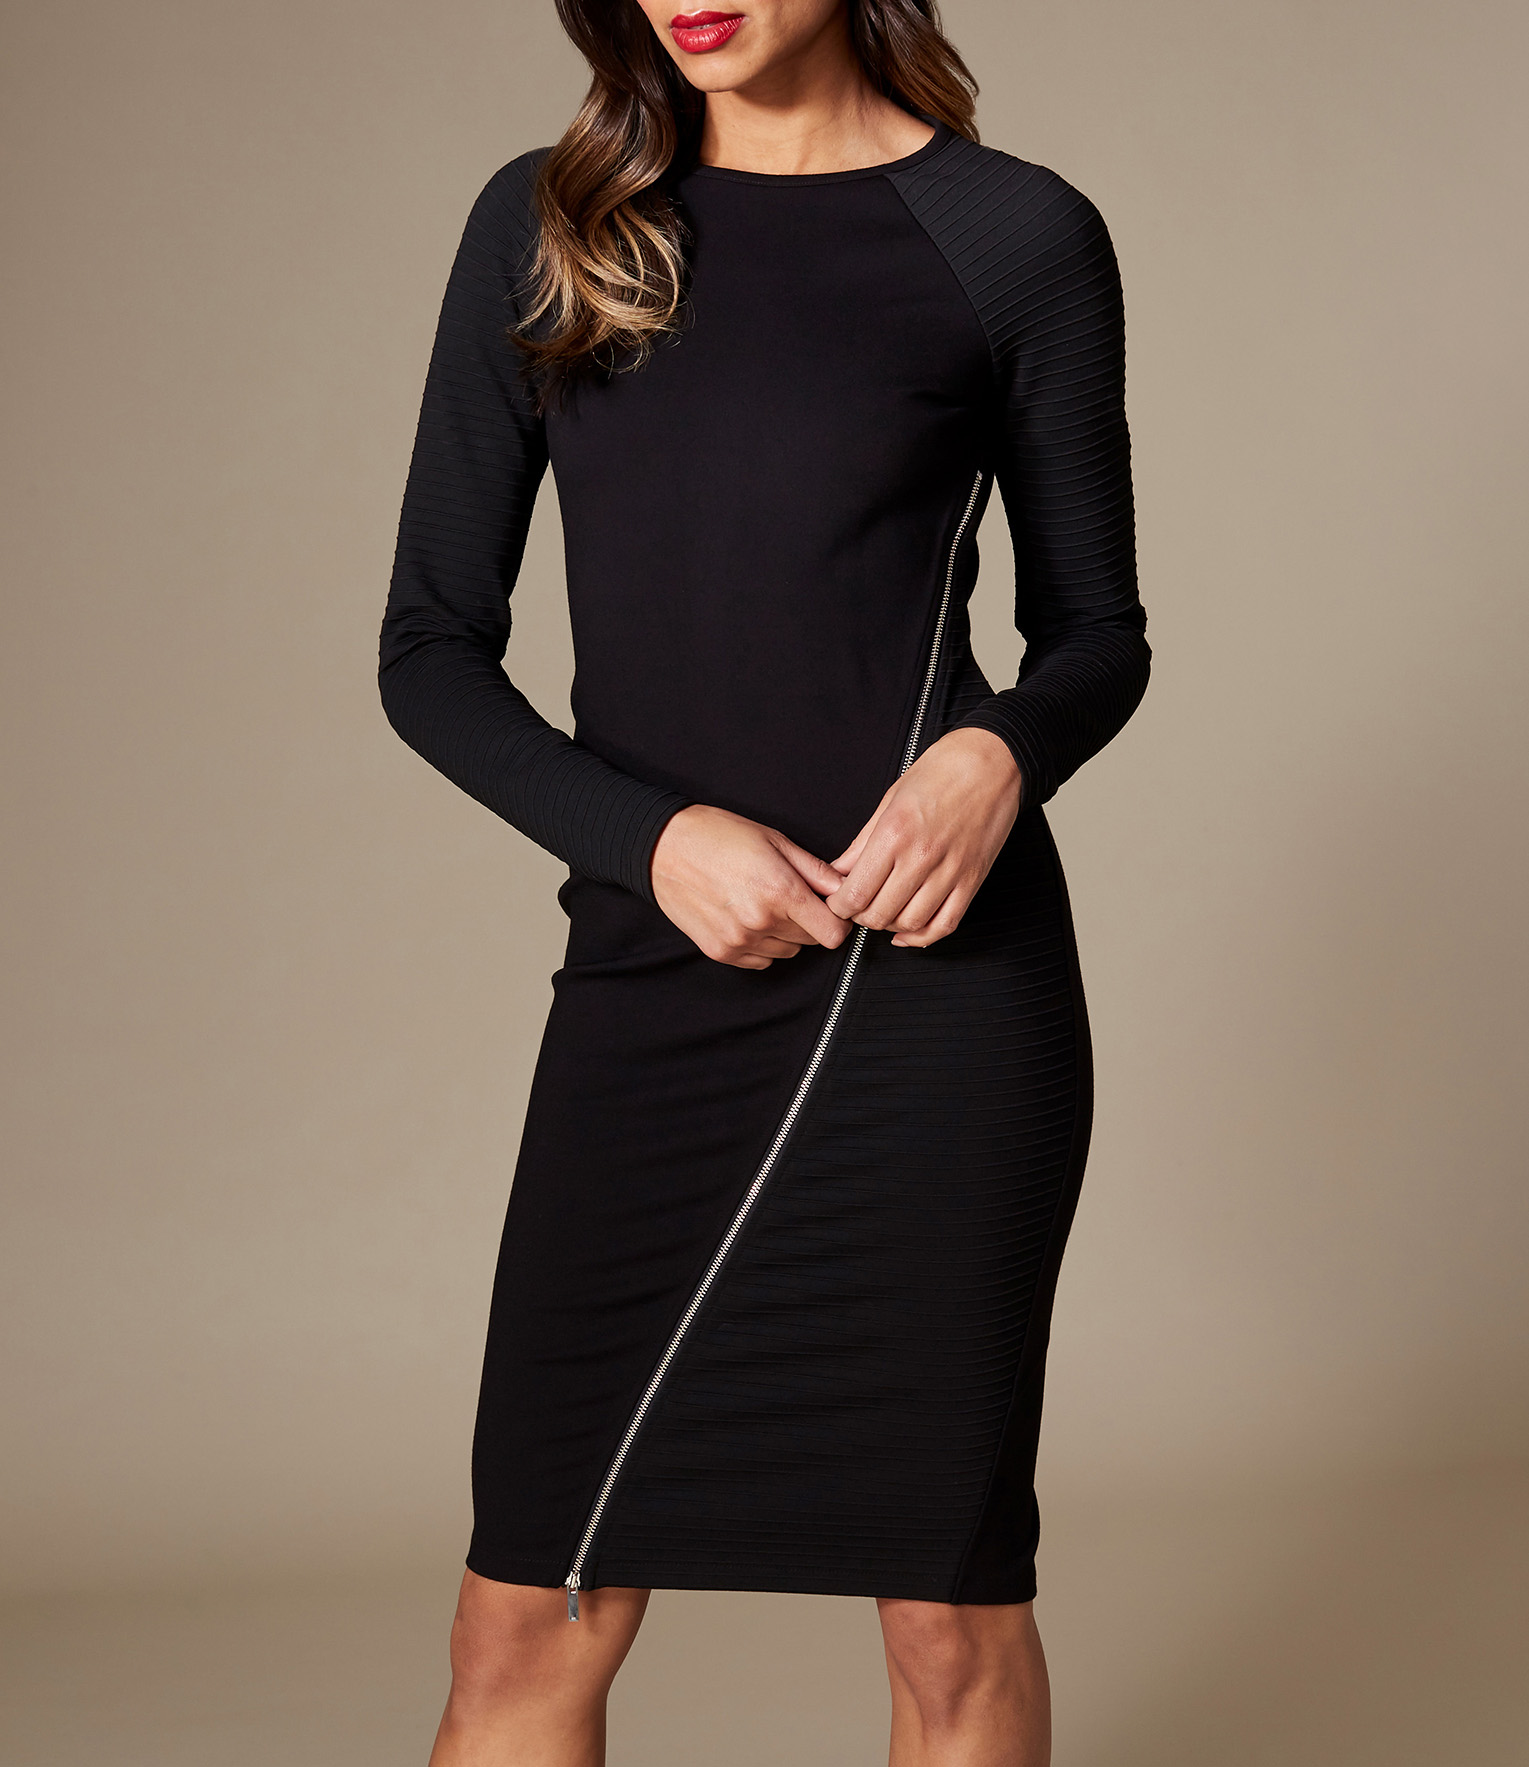 Zip Detail Black Midi Bodycon Dress